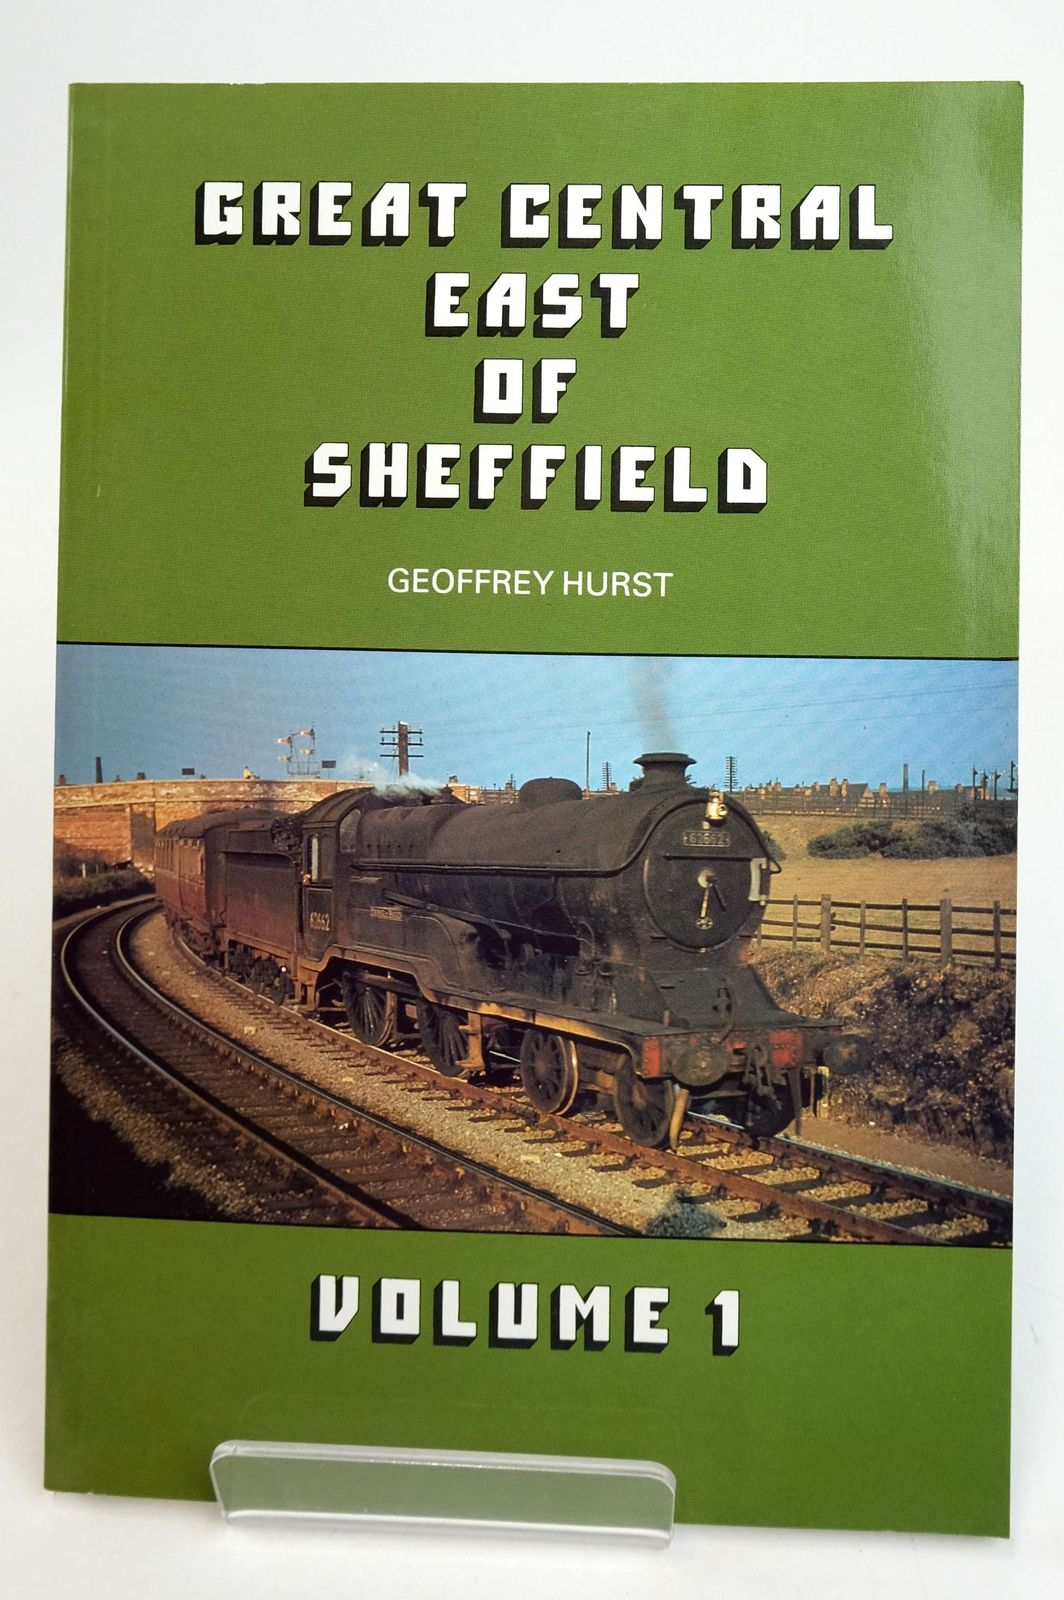 Photo of GREAT CENTRAL EAST OF SHEFFIELD VOLUME 1 written by Hurst, Geoffrey published by Milestone Publications (STOCK CODE: 1819612)  for sale by Stella & Rose's Books